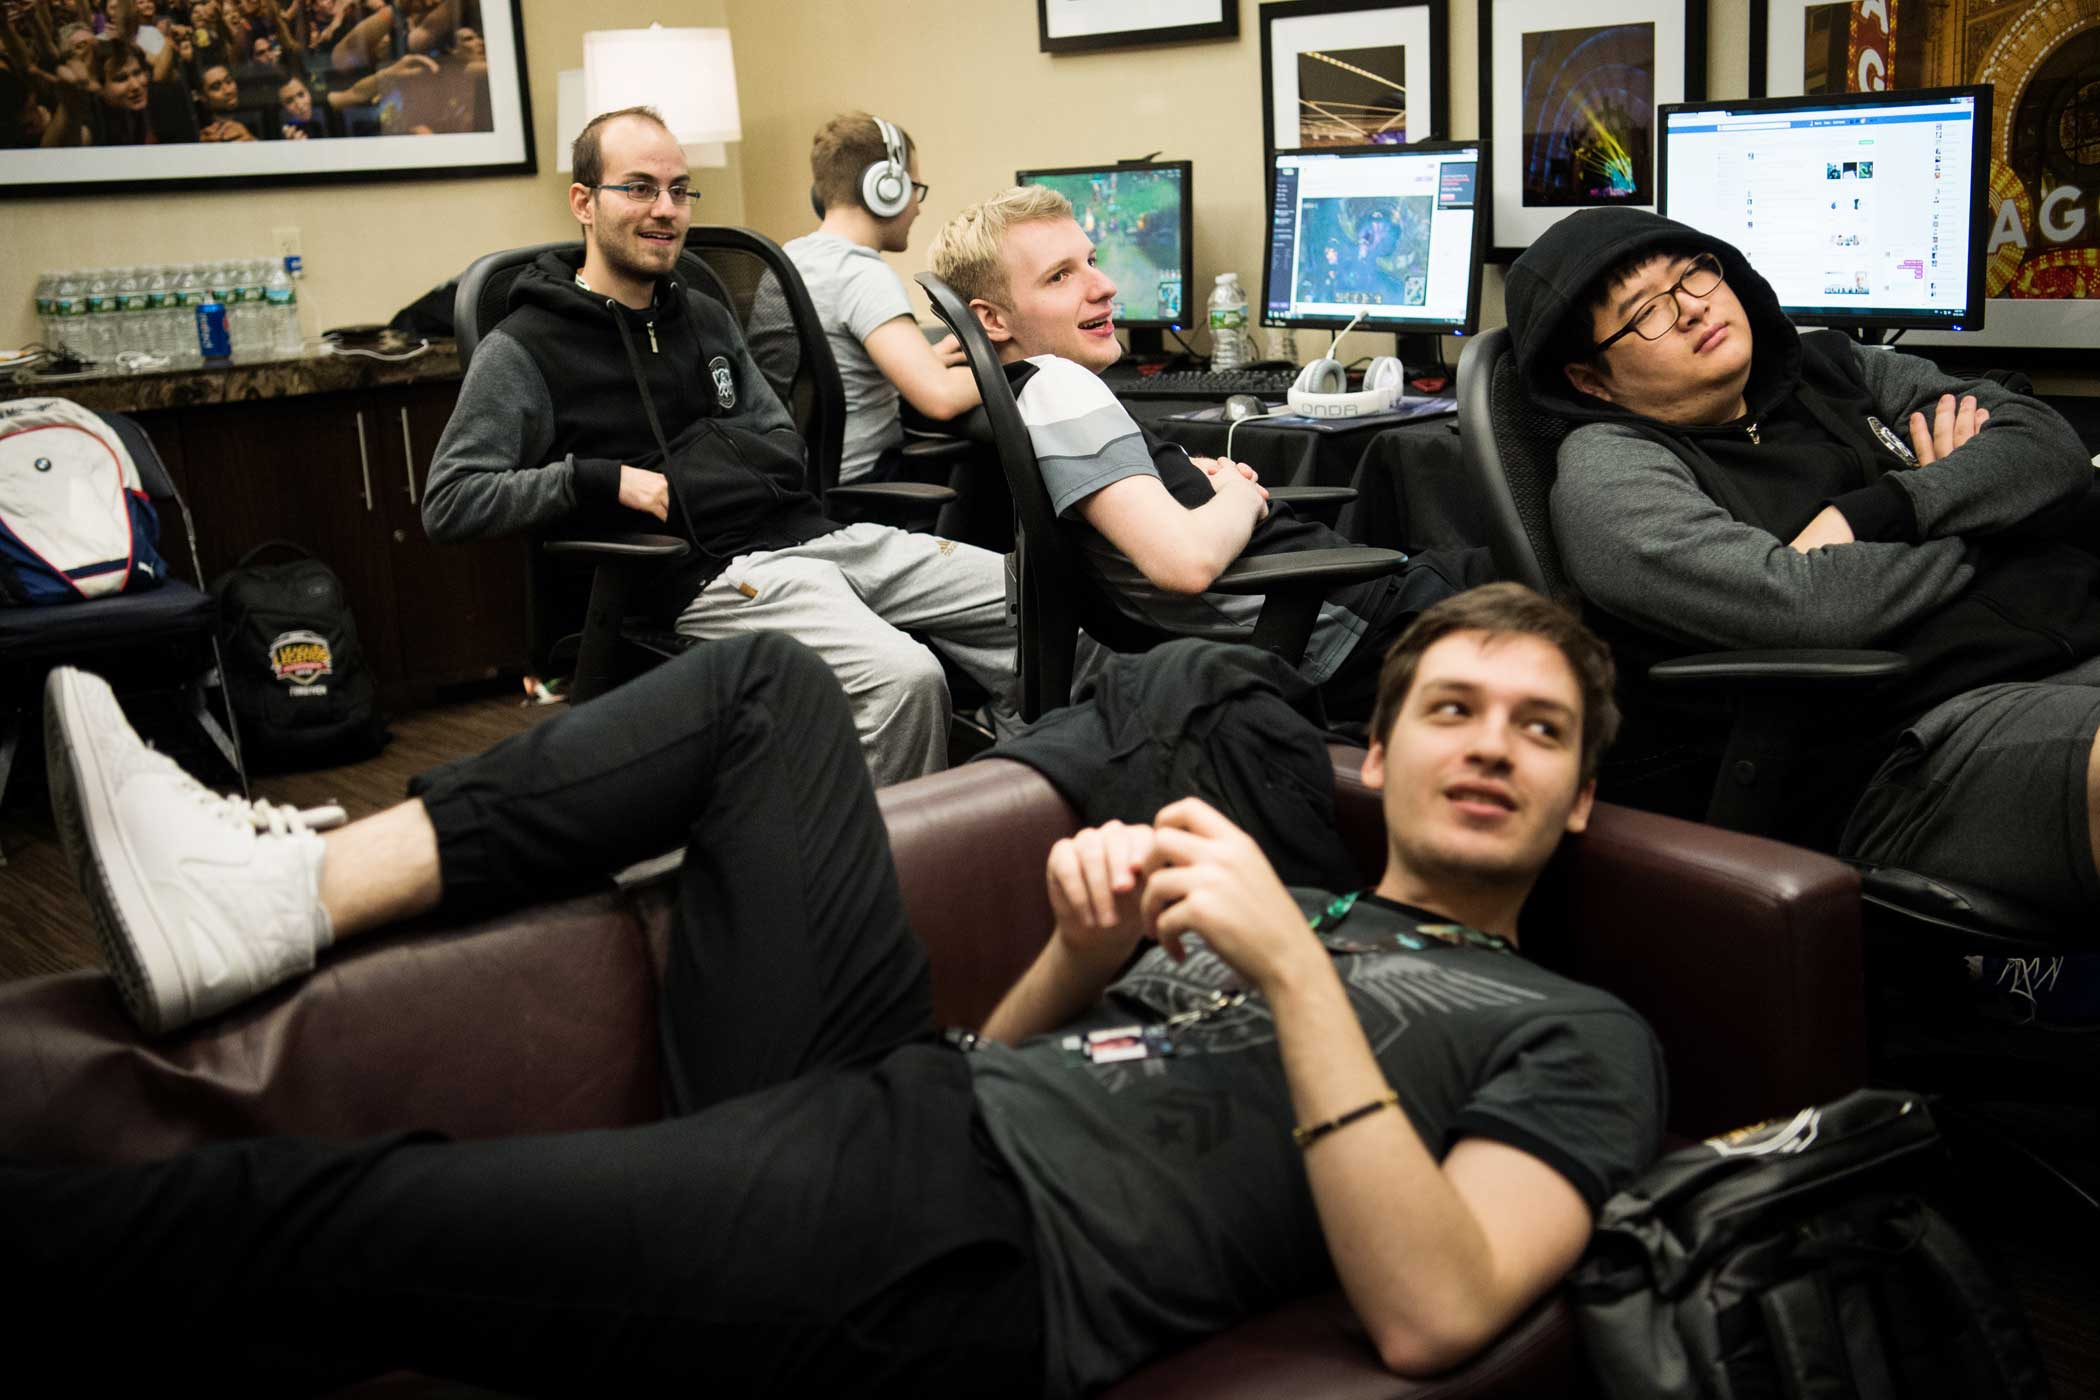 Team members of H2k-Gaming watch the semifinal match as they await to play their semifinal match on the following night. The team enjoyed the match just as much as any fan, laughing at the unorthodox strategy from ROX Tigers while debating how they would defeat it if they faced it against Samsung Galaxy the next day.